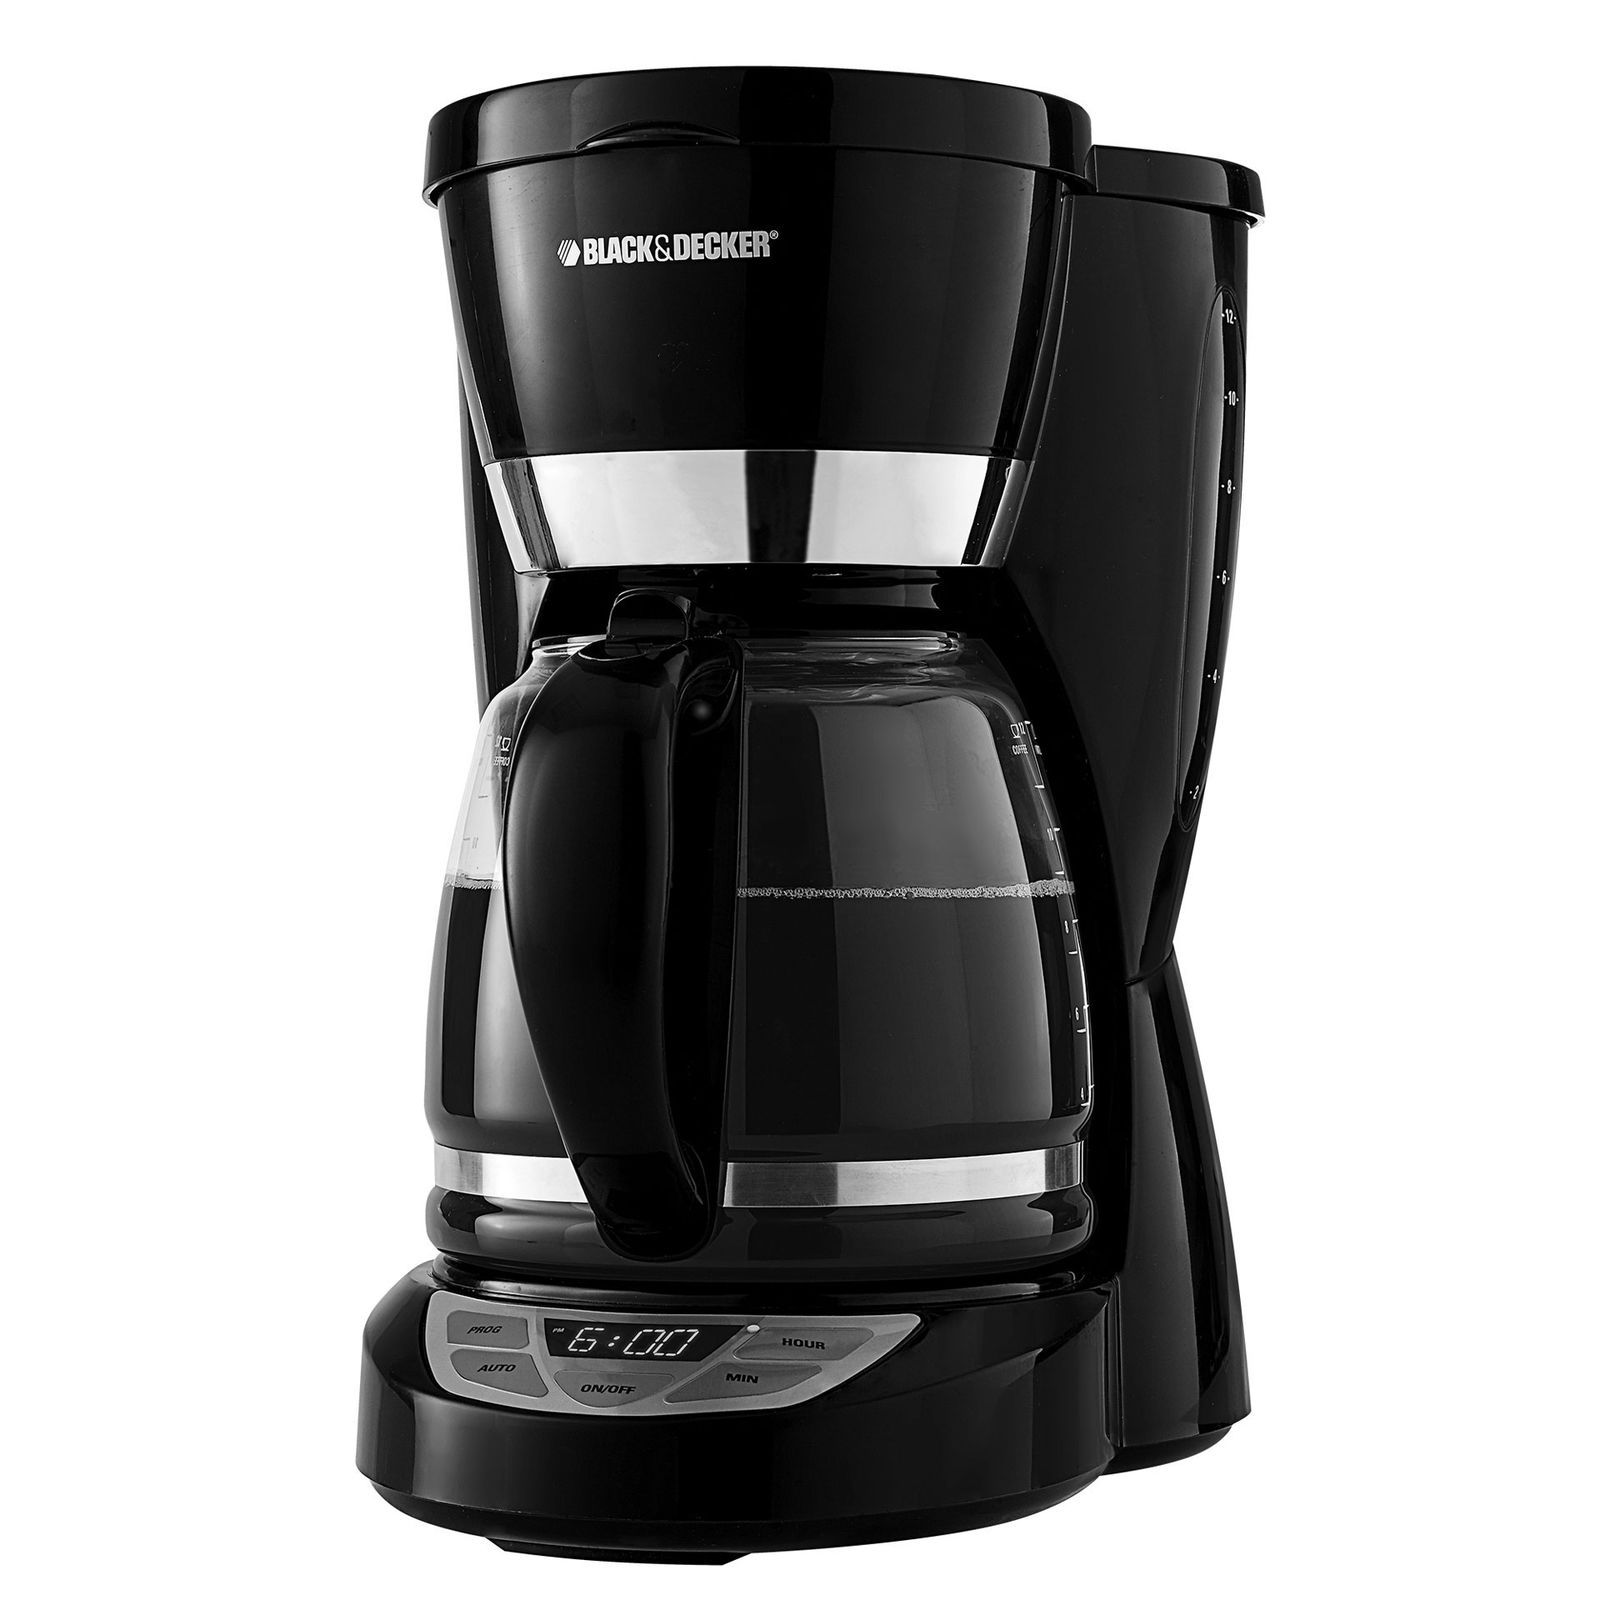 Black and decker 12 cup programmable coffee maker - Black Decker 12 Cup Programmable Coffee Maker Cm1050b